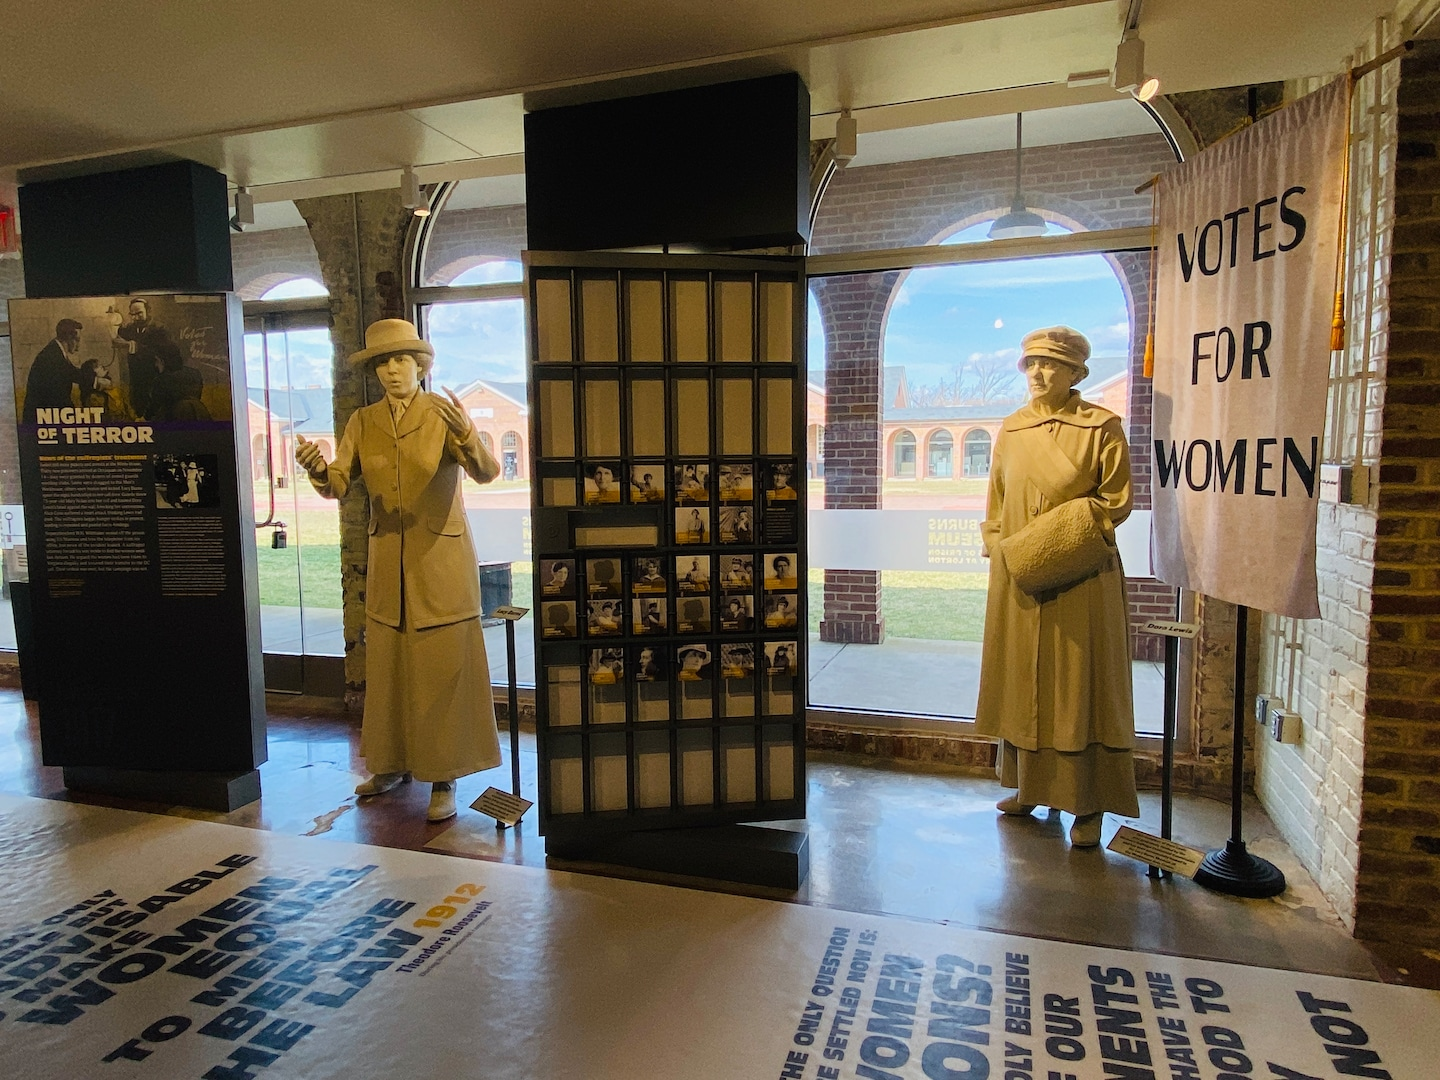 The Lucy Burns Museum honors the 100th anniversary of women's suffrage and the 19th Amendment